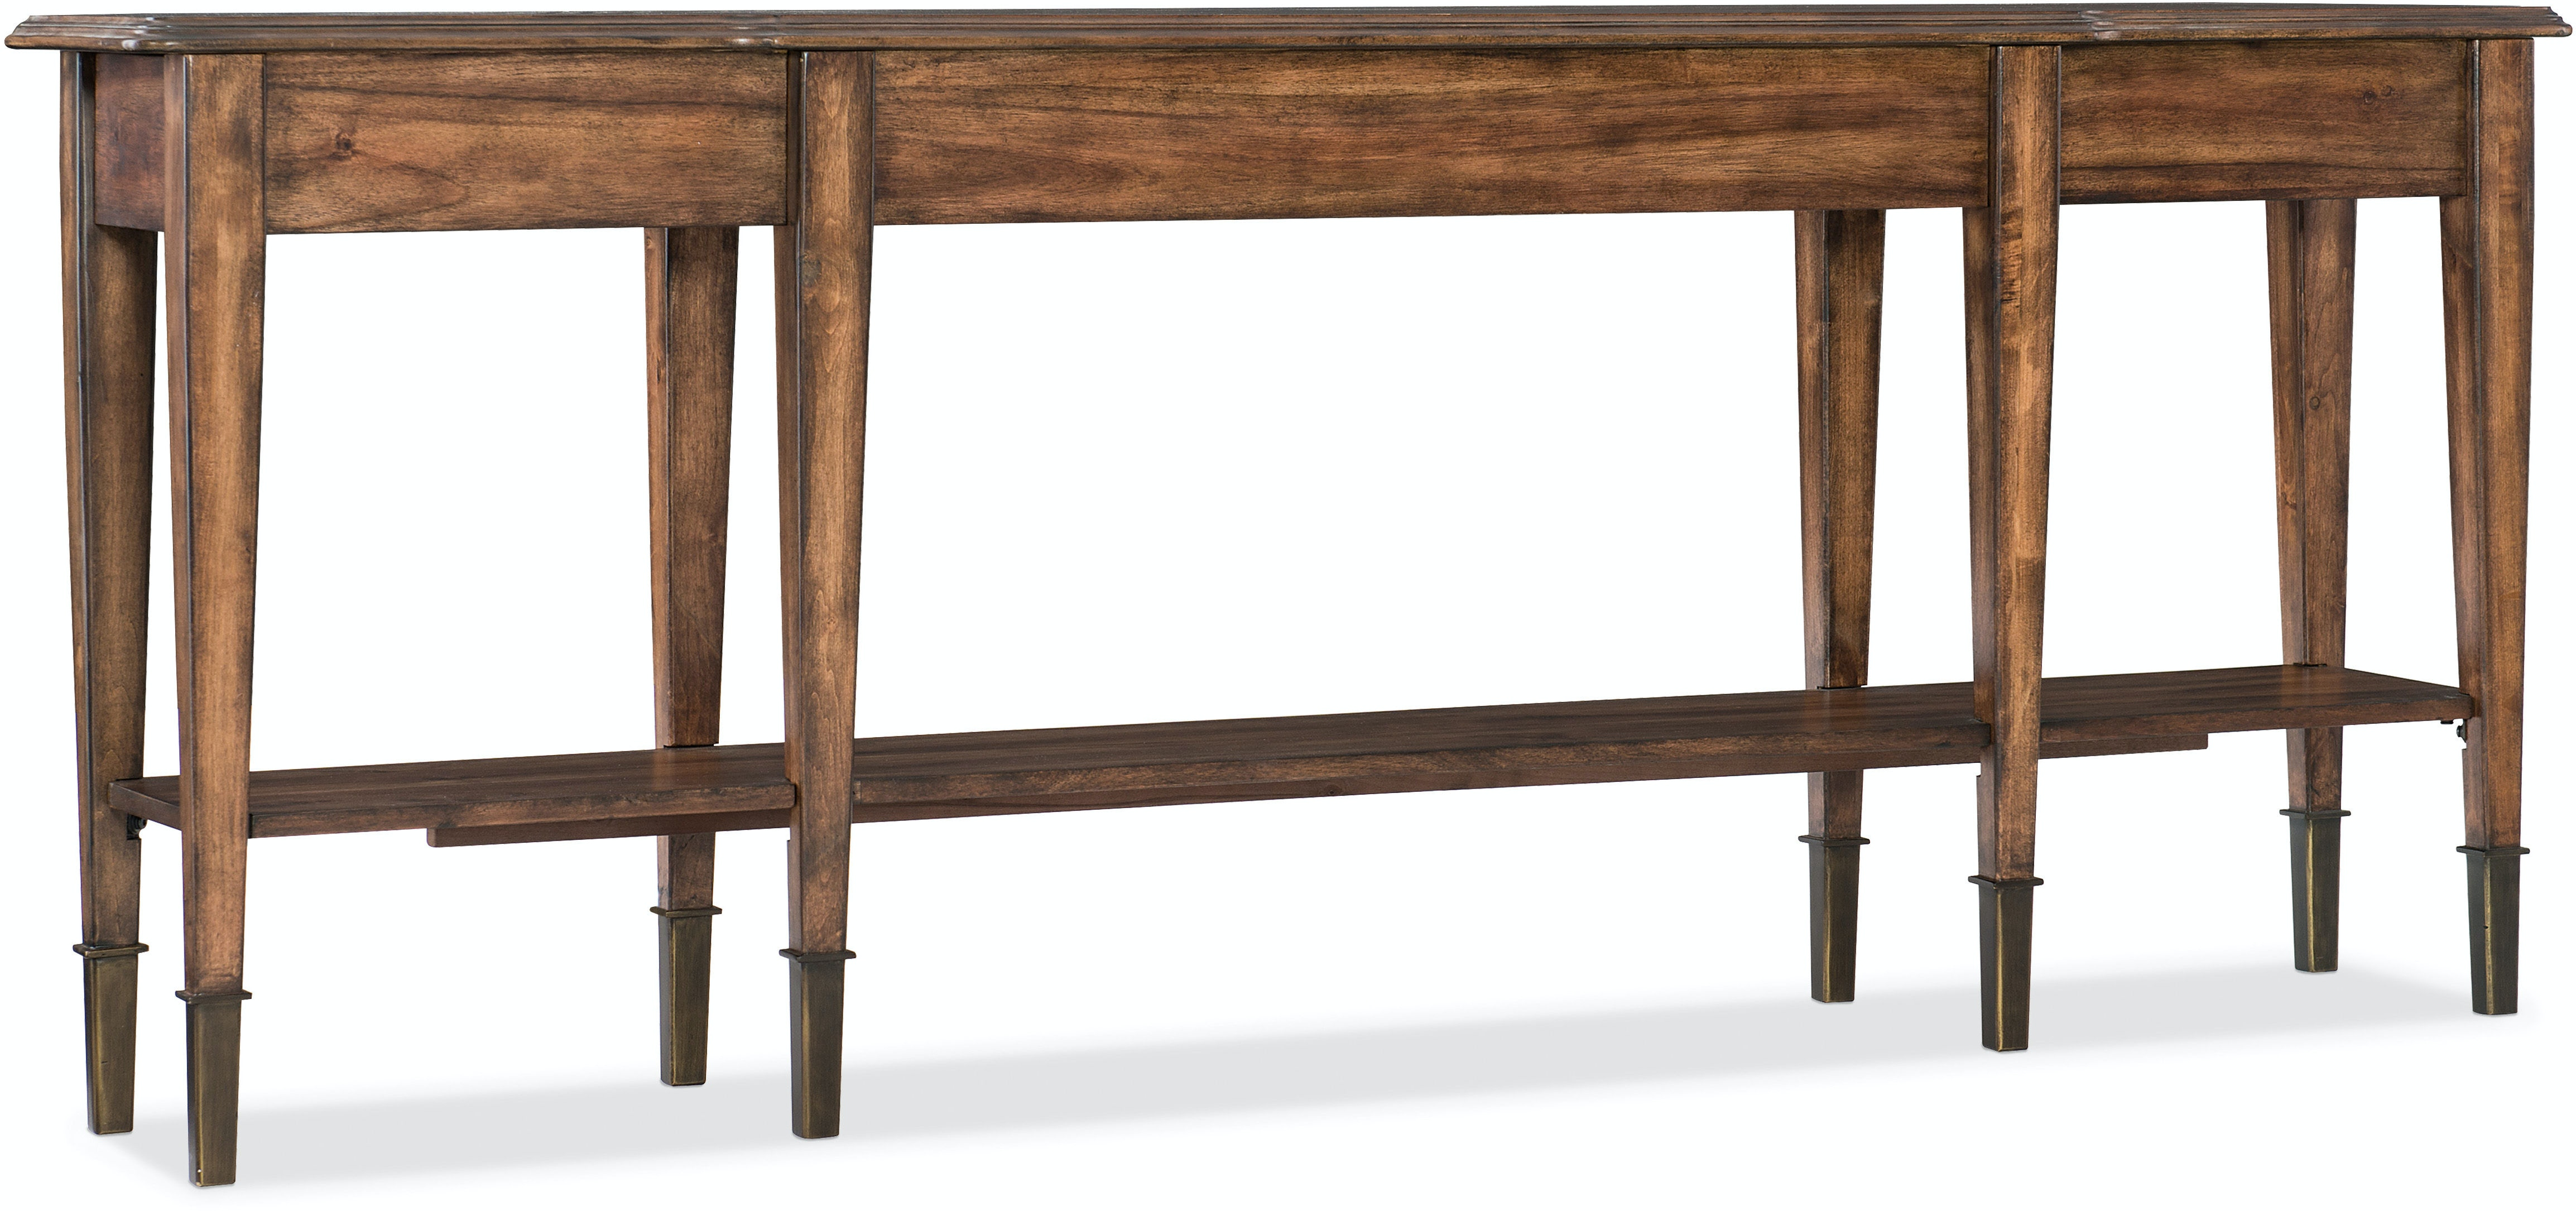 Hooker furniture living room skinny console table 5660 85001 mwd hooker furniture skinny console table 5660 85001 mwd geotapseo Gallery